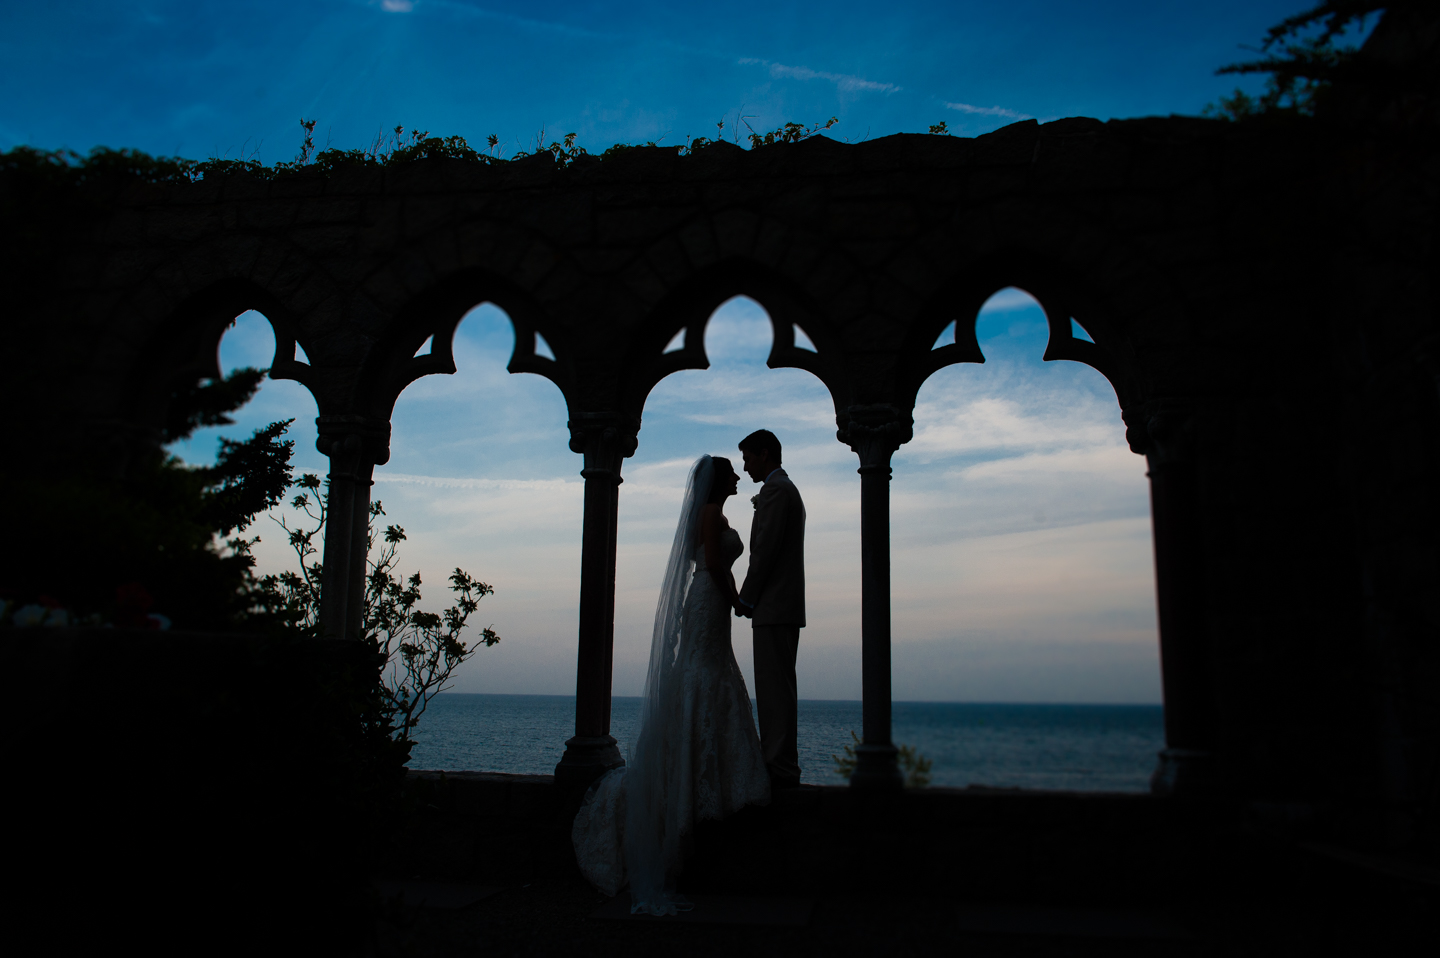 Silhouette of couple in castle arches by the ocean during their wedding